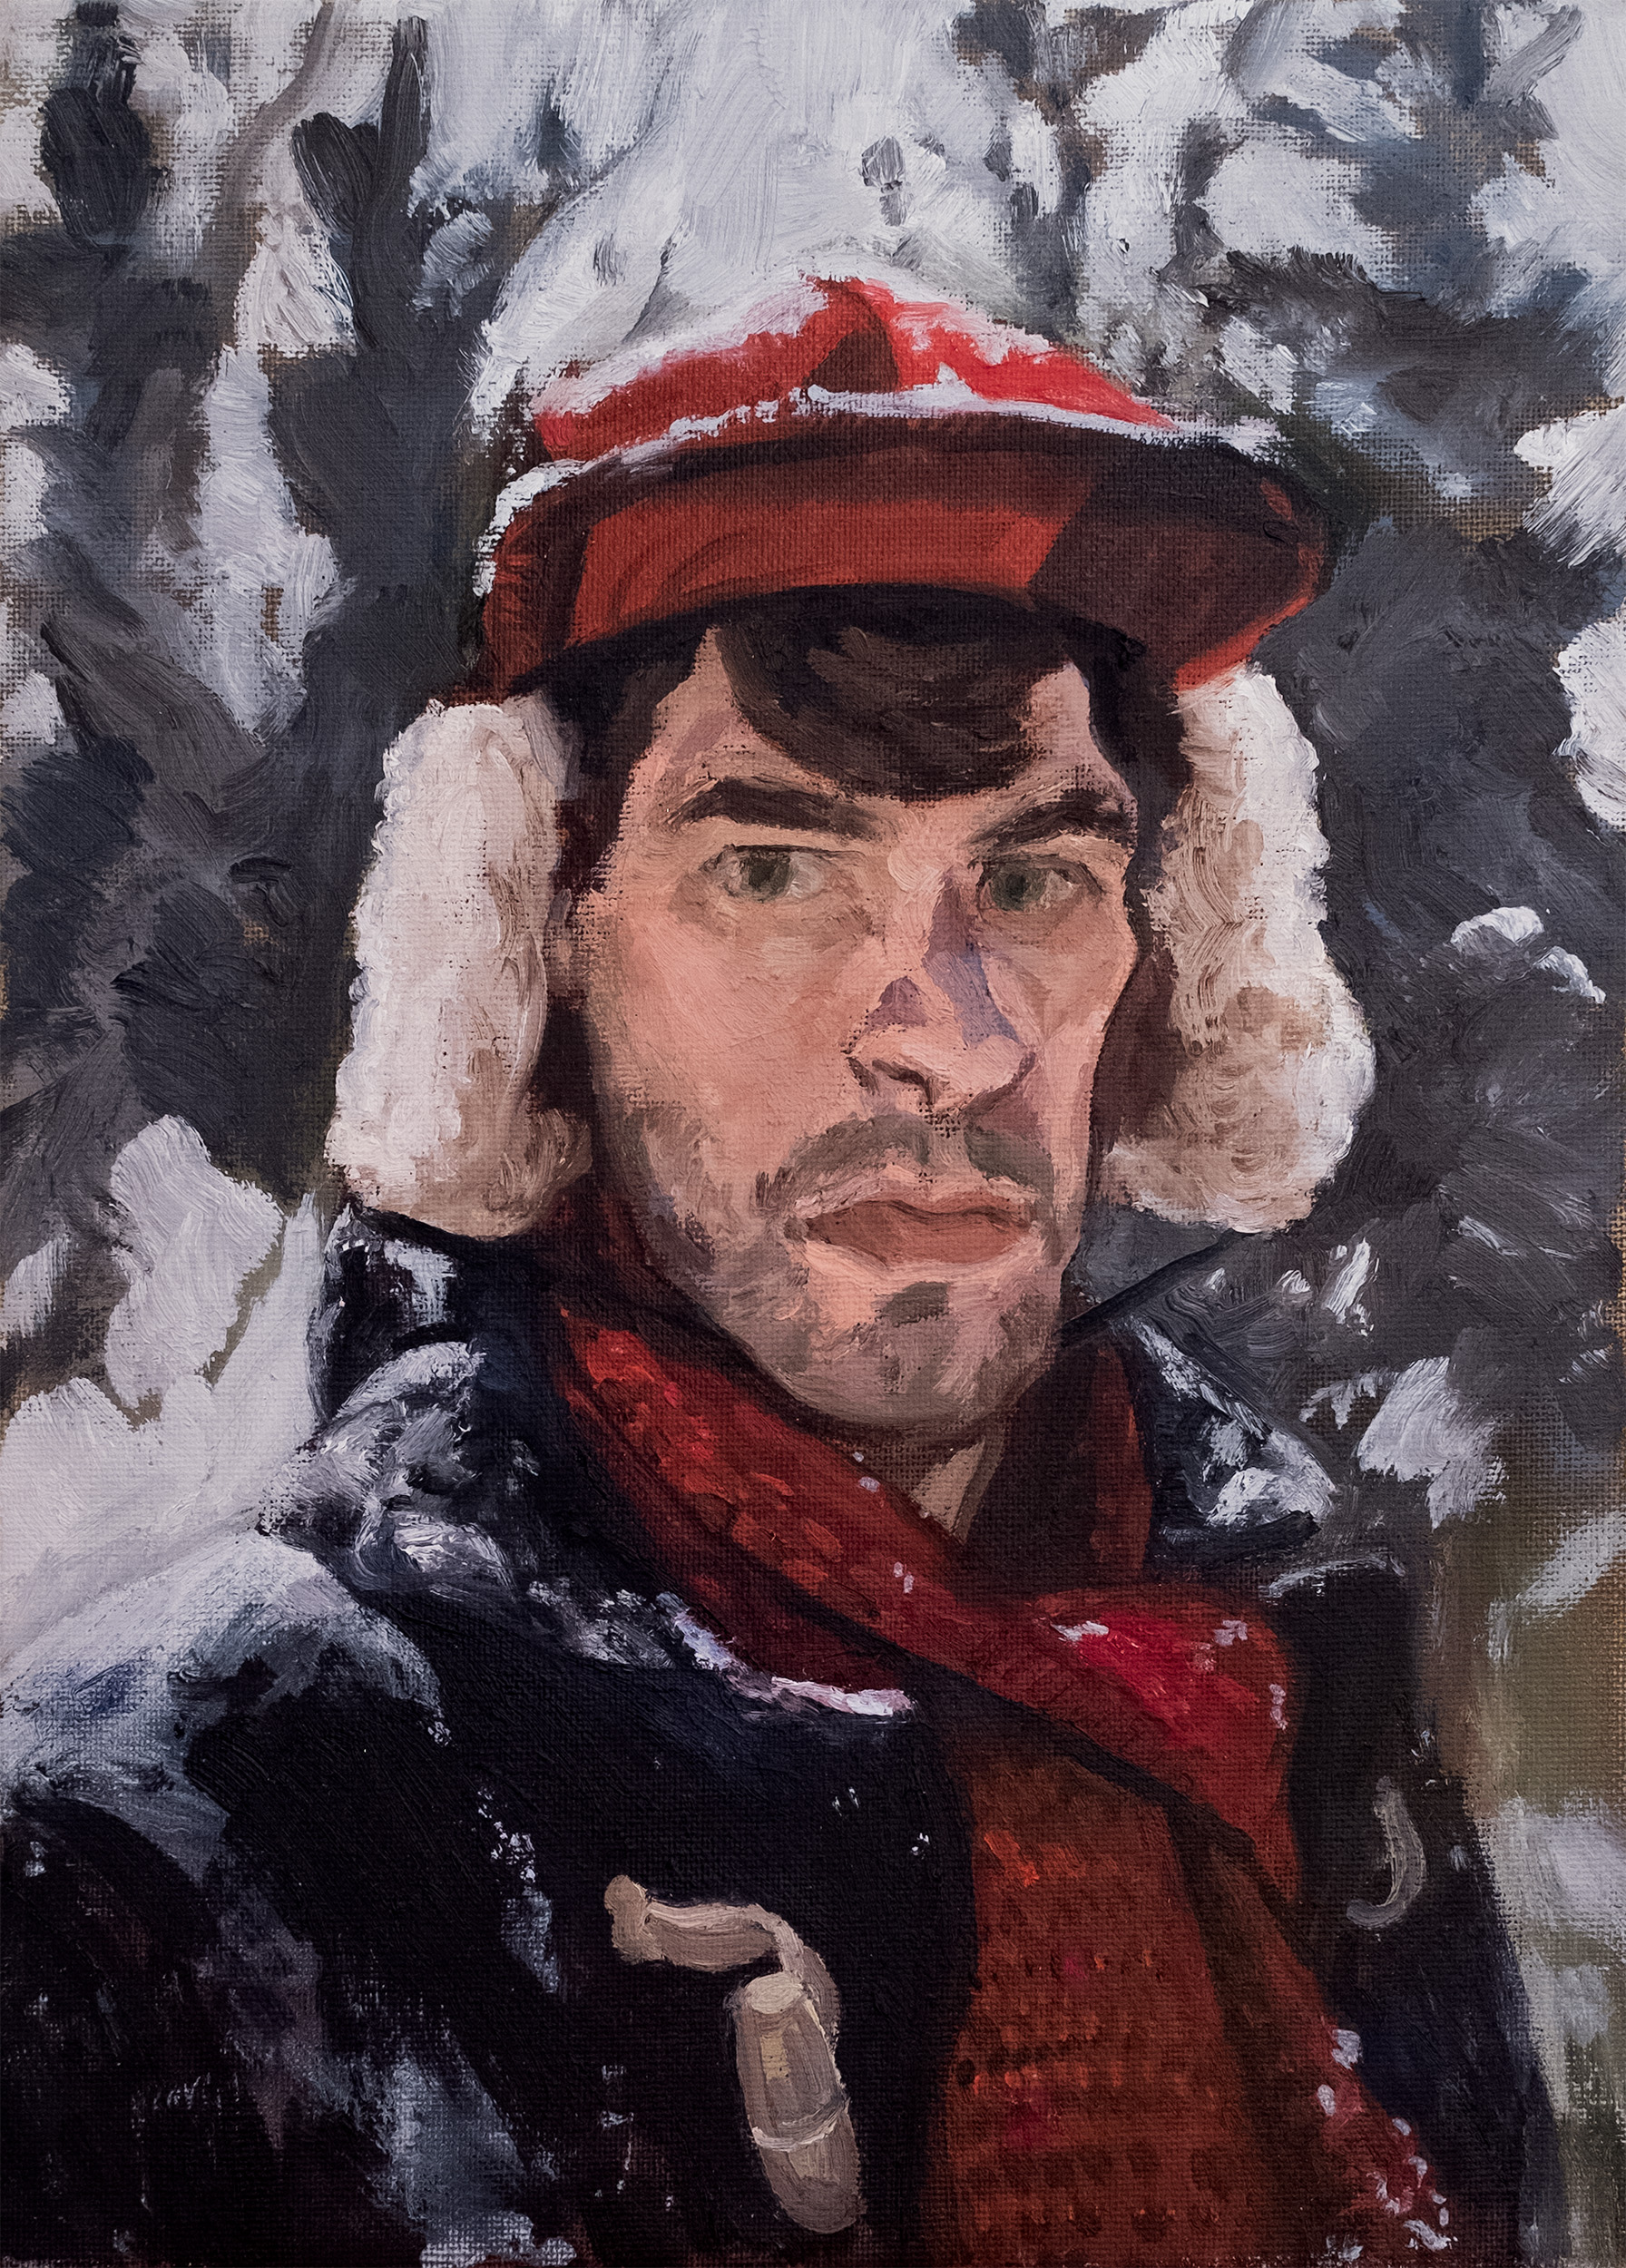 Self-Portrait in Winter